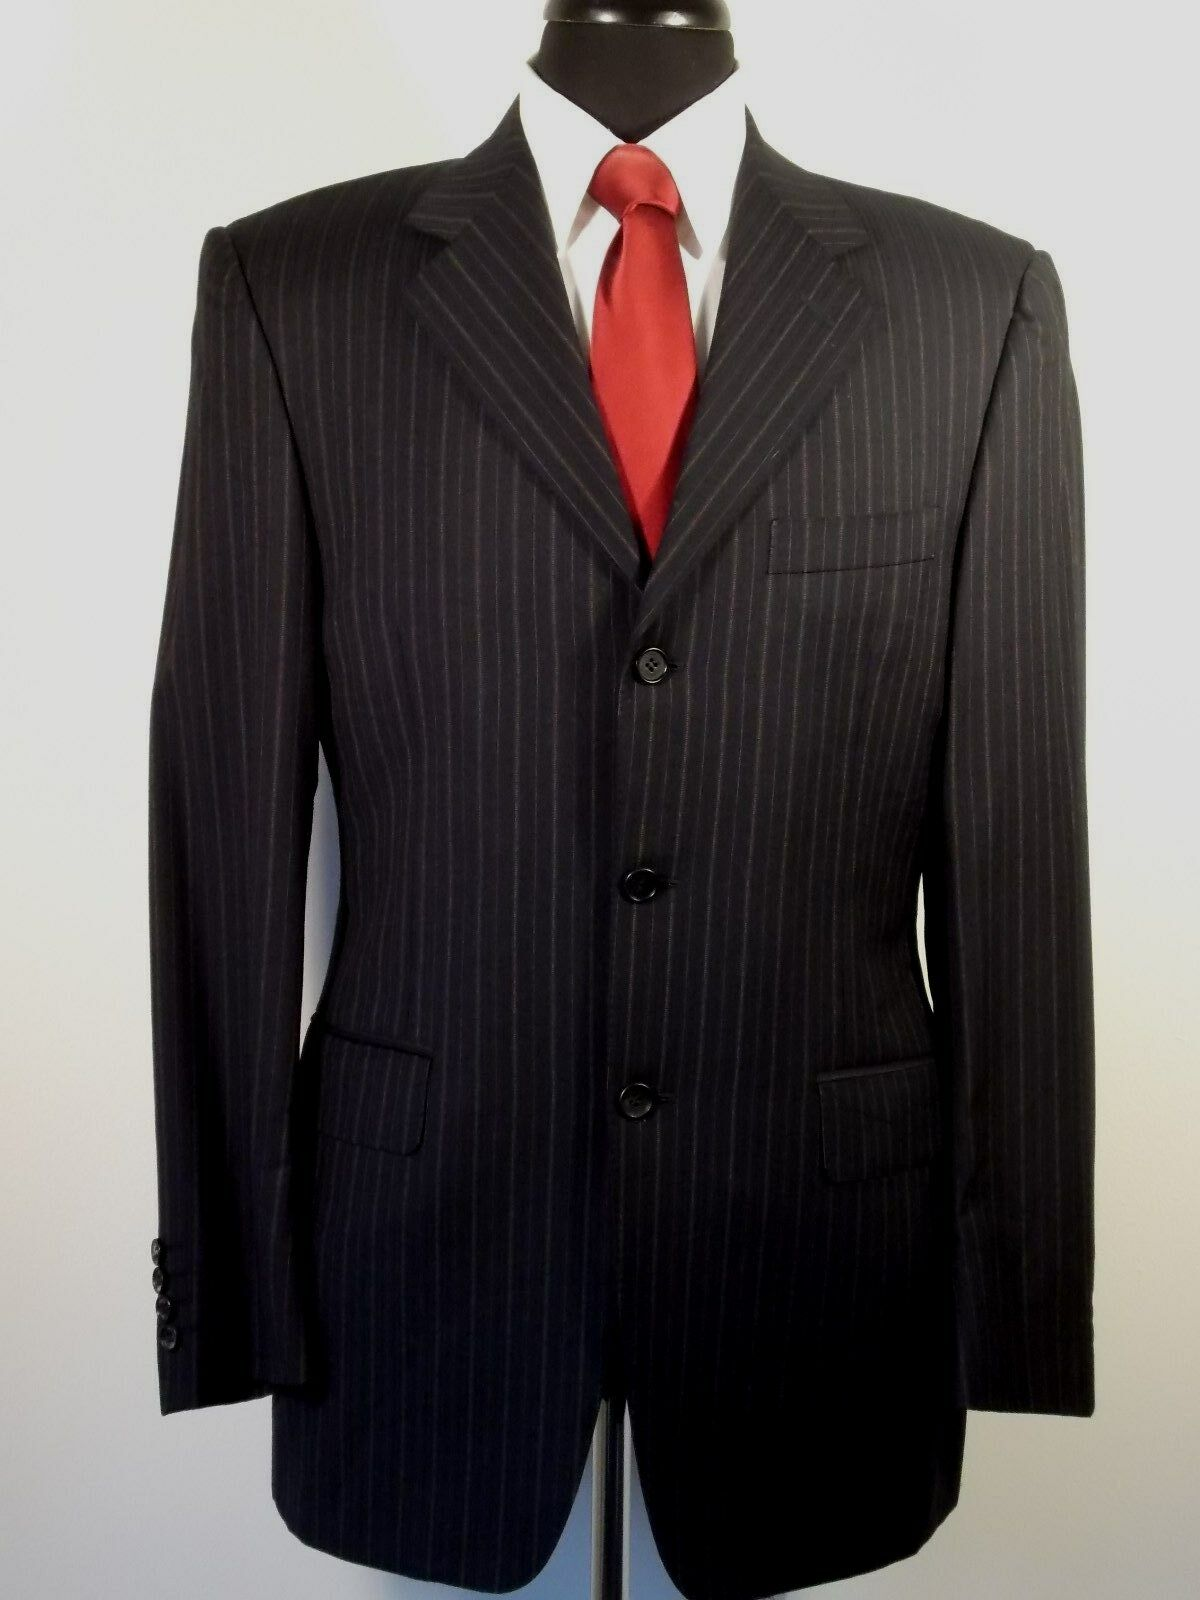 Canali navy stripe 3 button wool sport coat, 38R, dual vented, made in